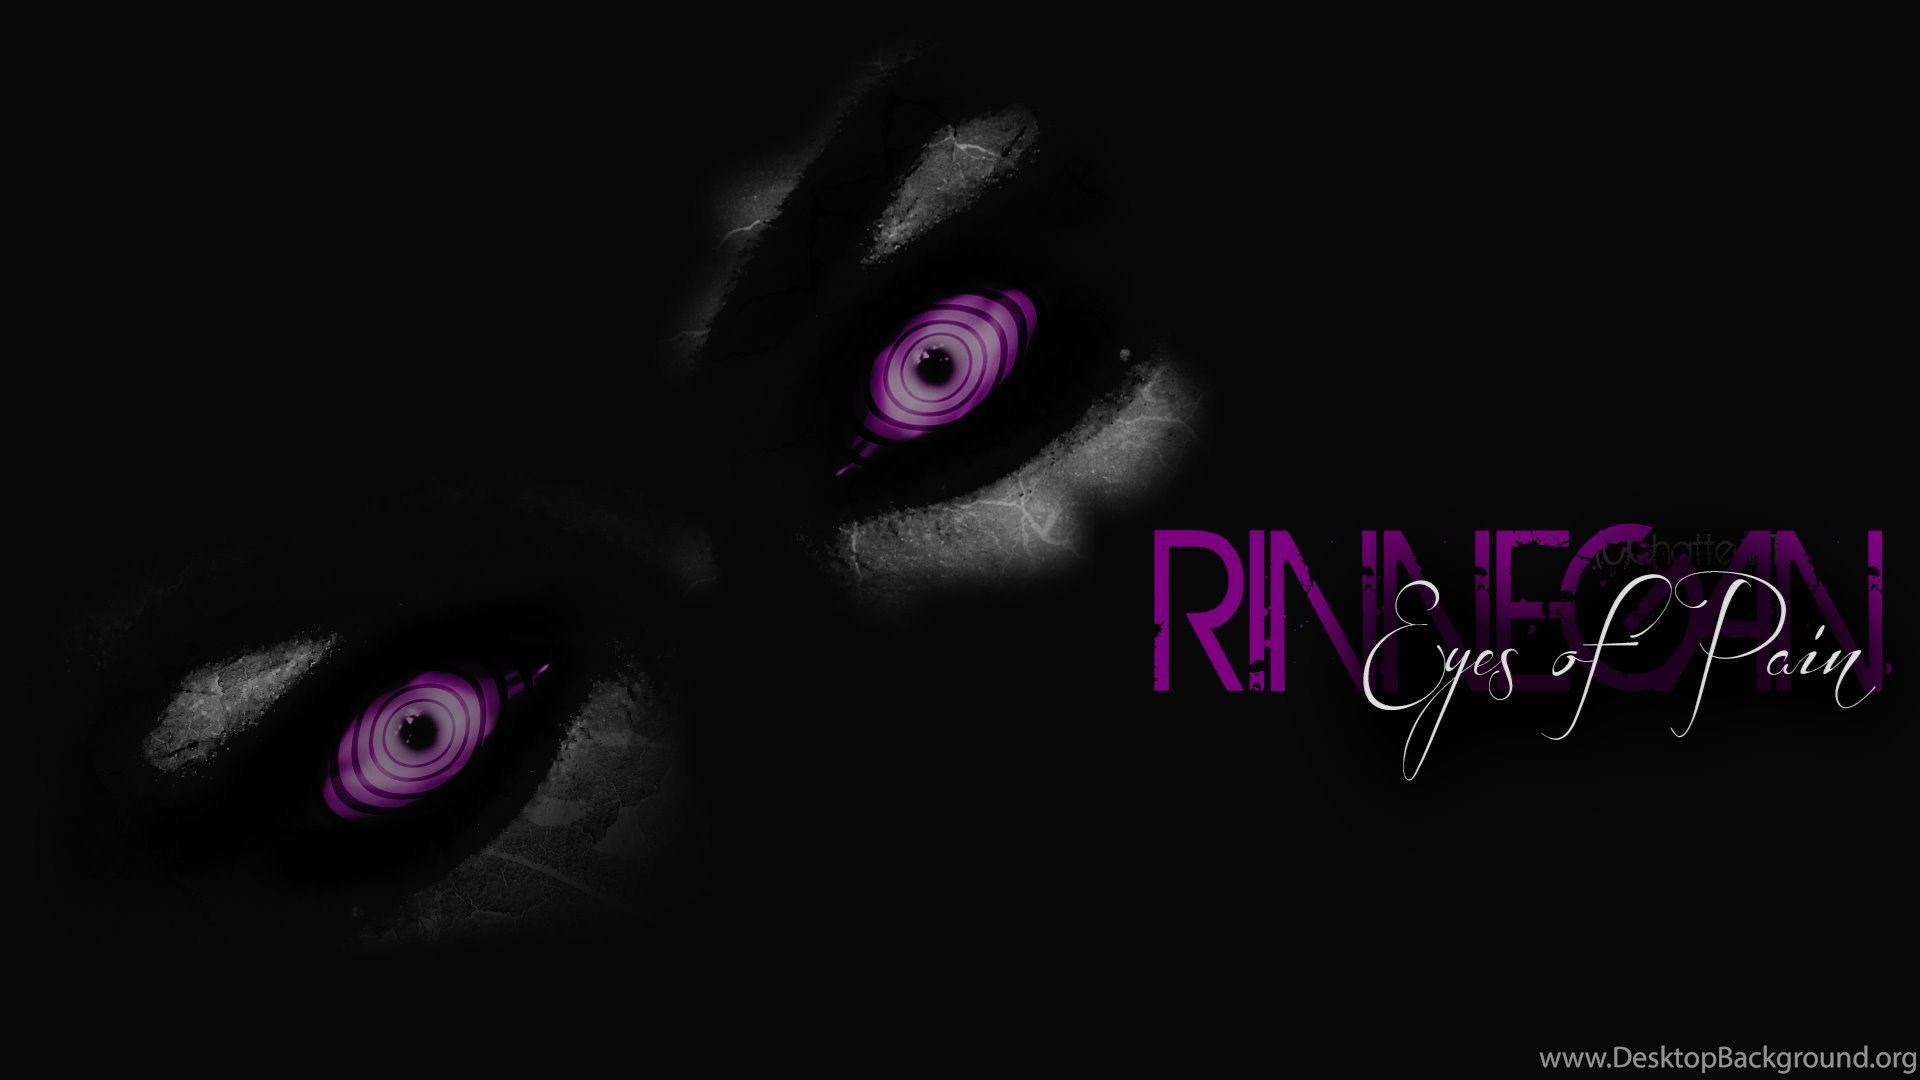 Rinnegan Eyes Of Pain By ChatteArt On DeviantArt Desktop Background